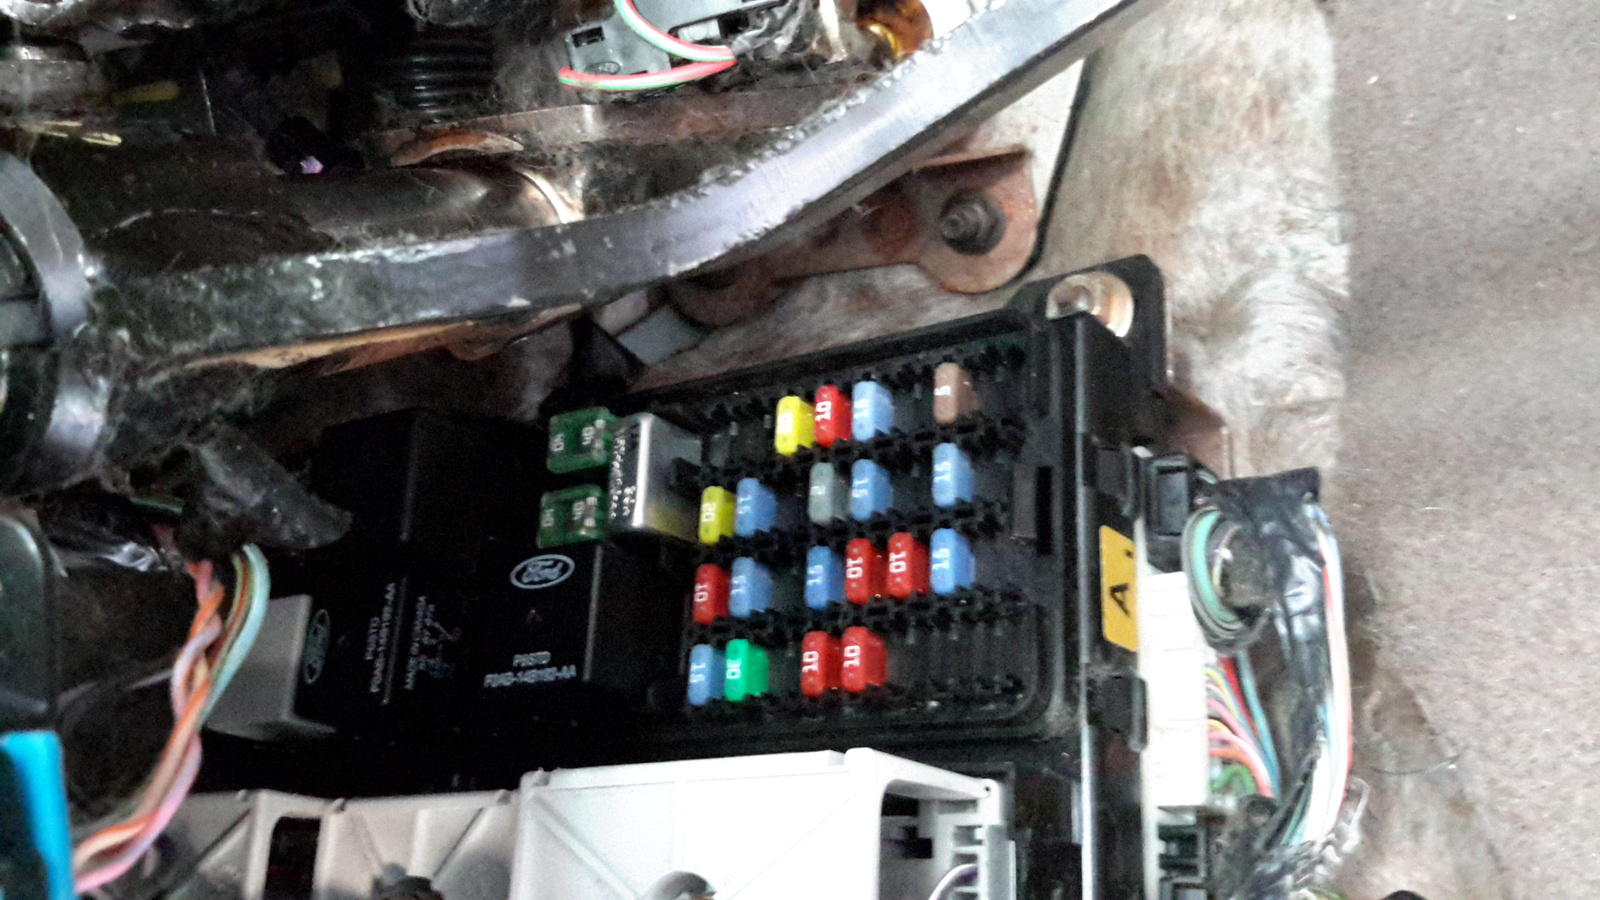 2003 Impala Wiring Diagram For Start System Mercury Sable Questions Where Is The Relay For The Power